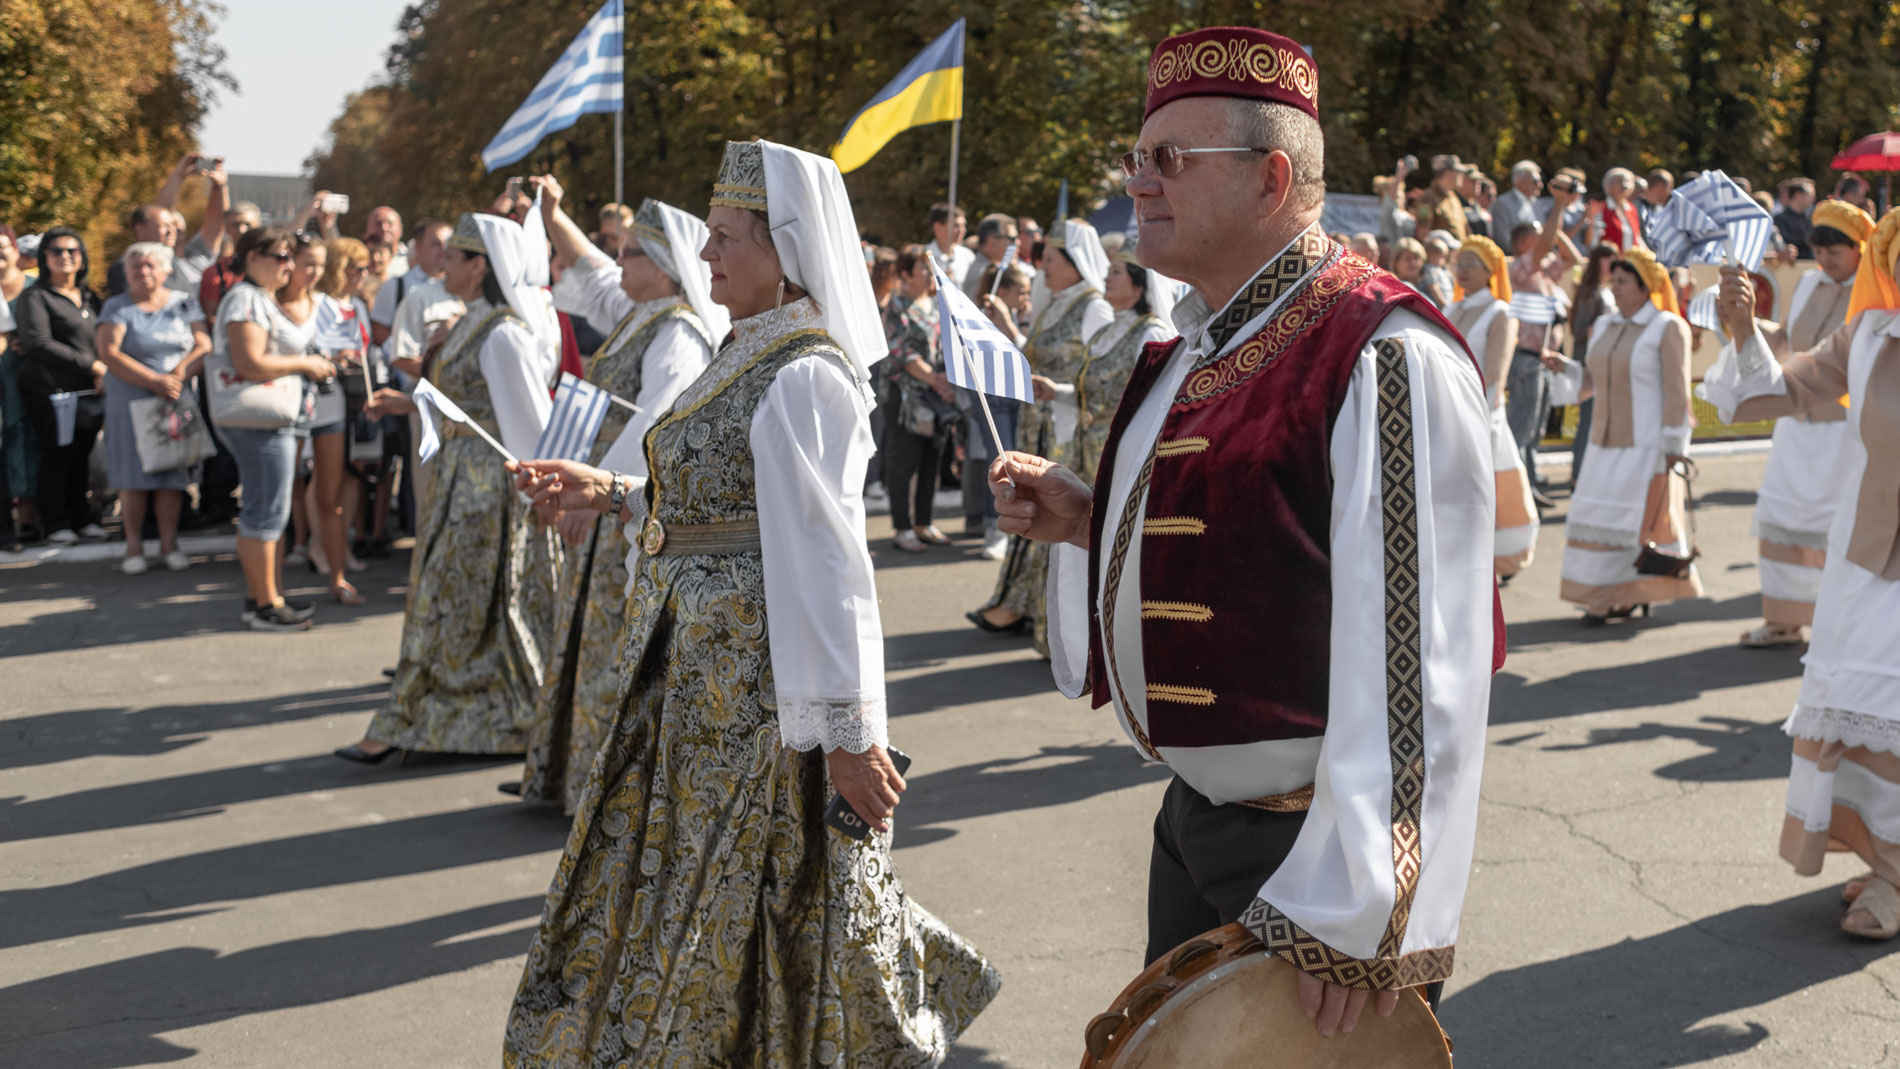 Greeks of Ukraine. Who are they?